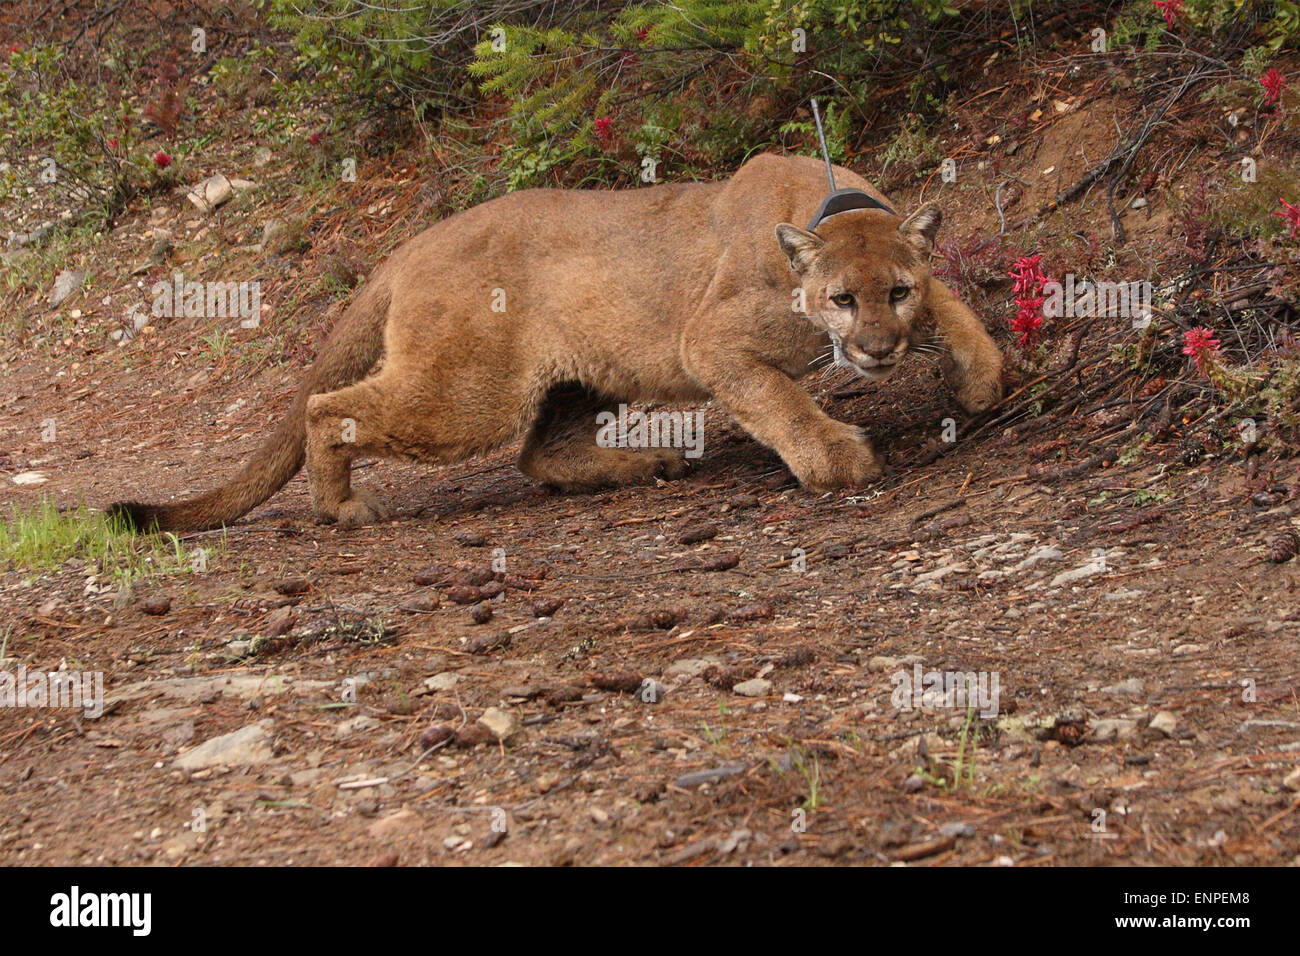 A puma, also known as a mountain lion or cougar, coming closer. - Stock Image